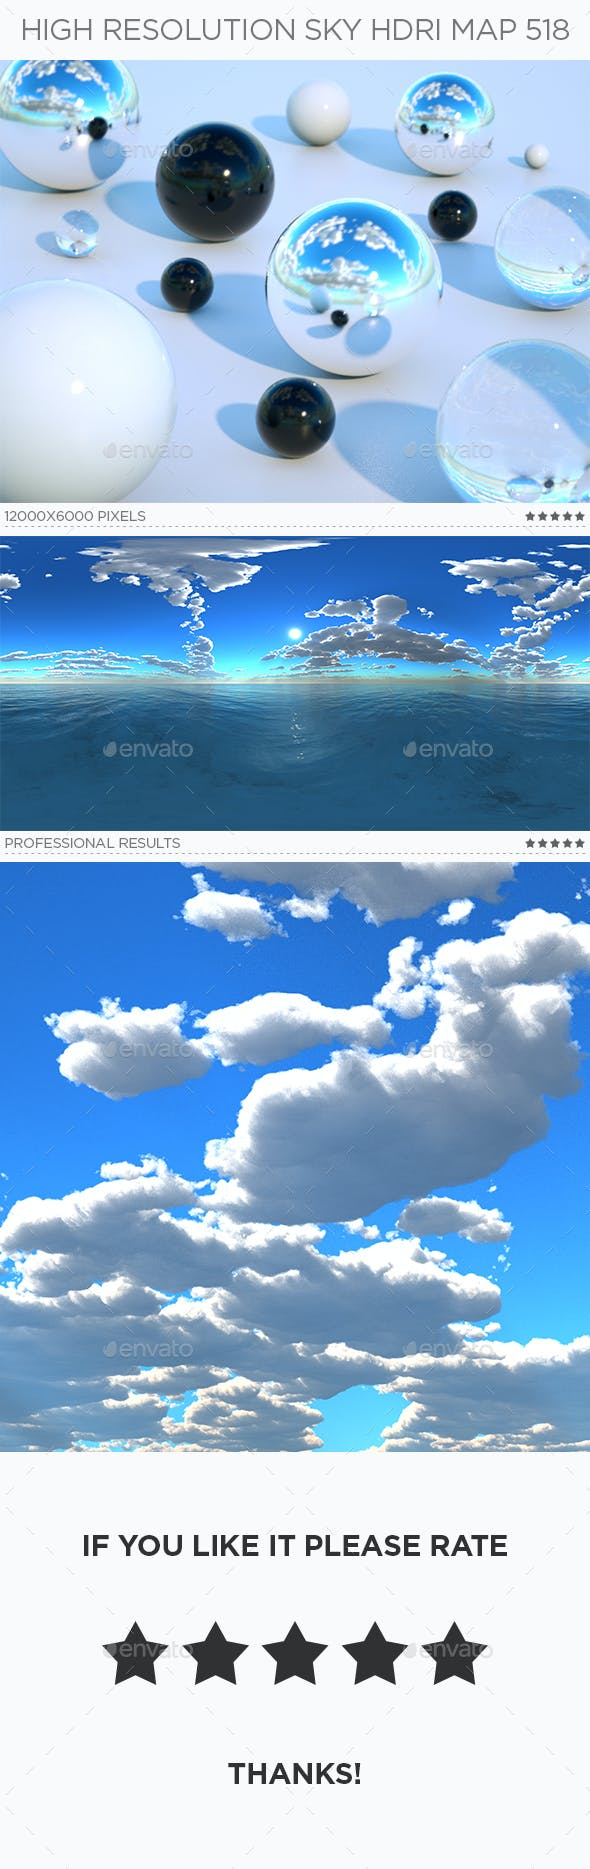 High Resolution Sky HDRi Map 518 - 3DOcean Item for Sale